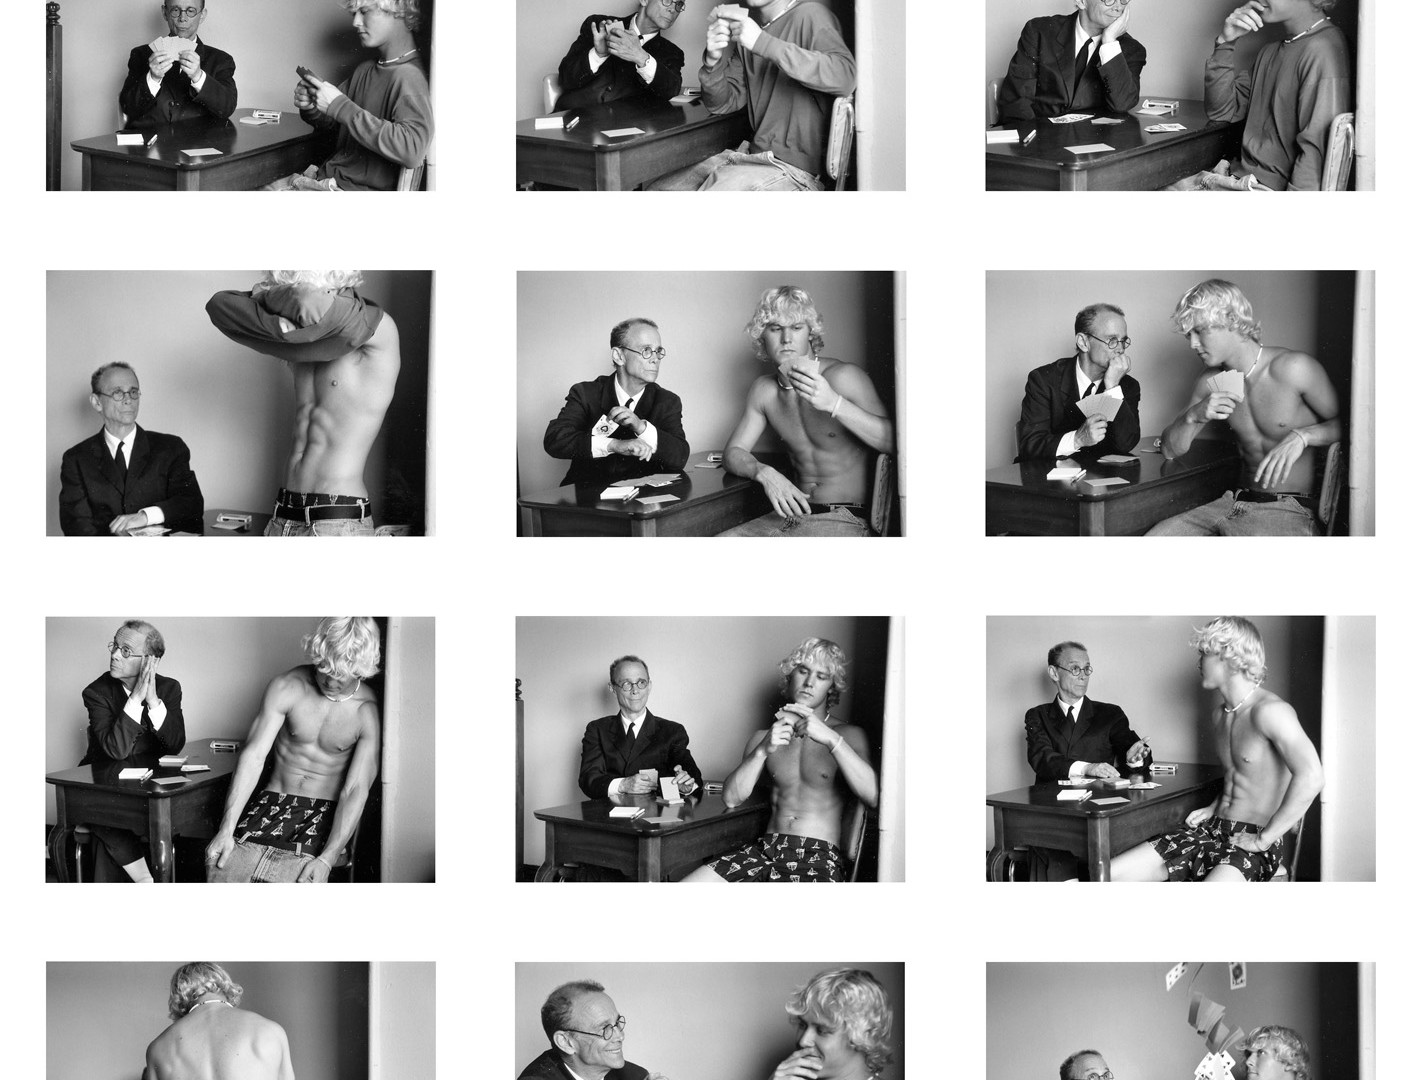 Duane Michals, Cavafy Cheats Playing Strip Poker, 2003-5